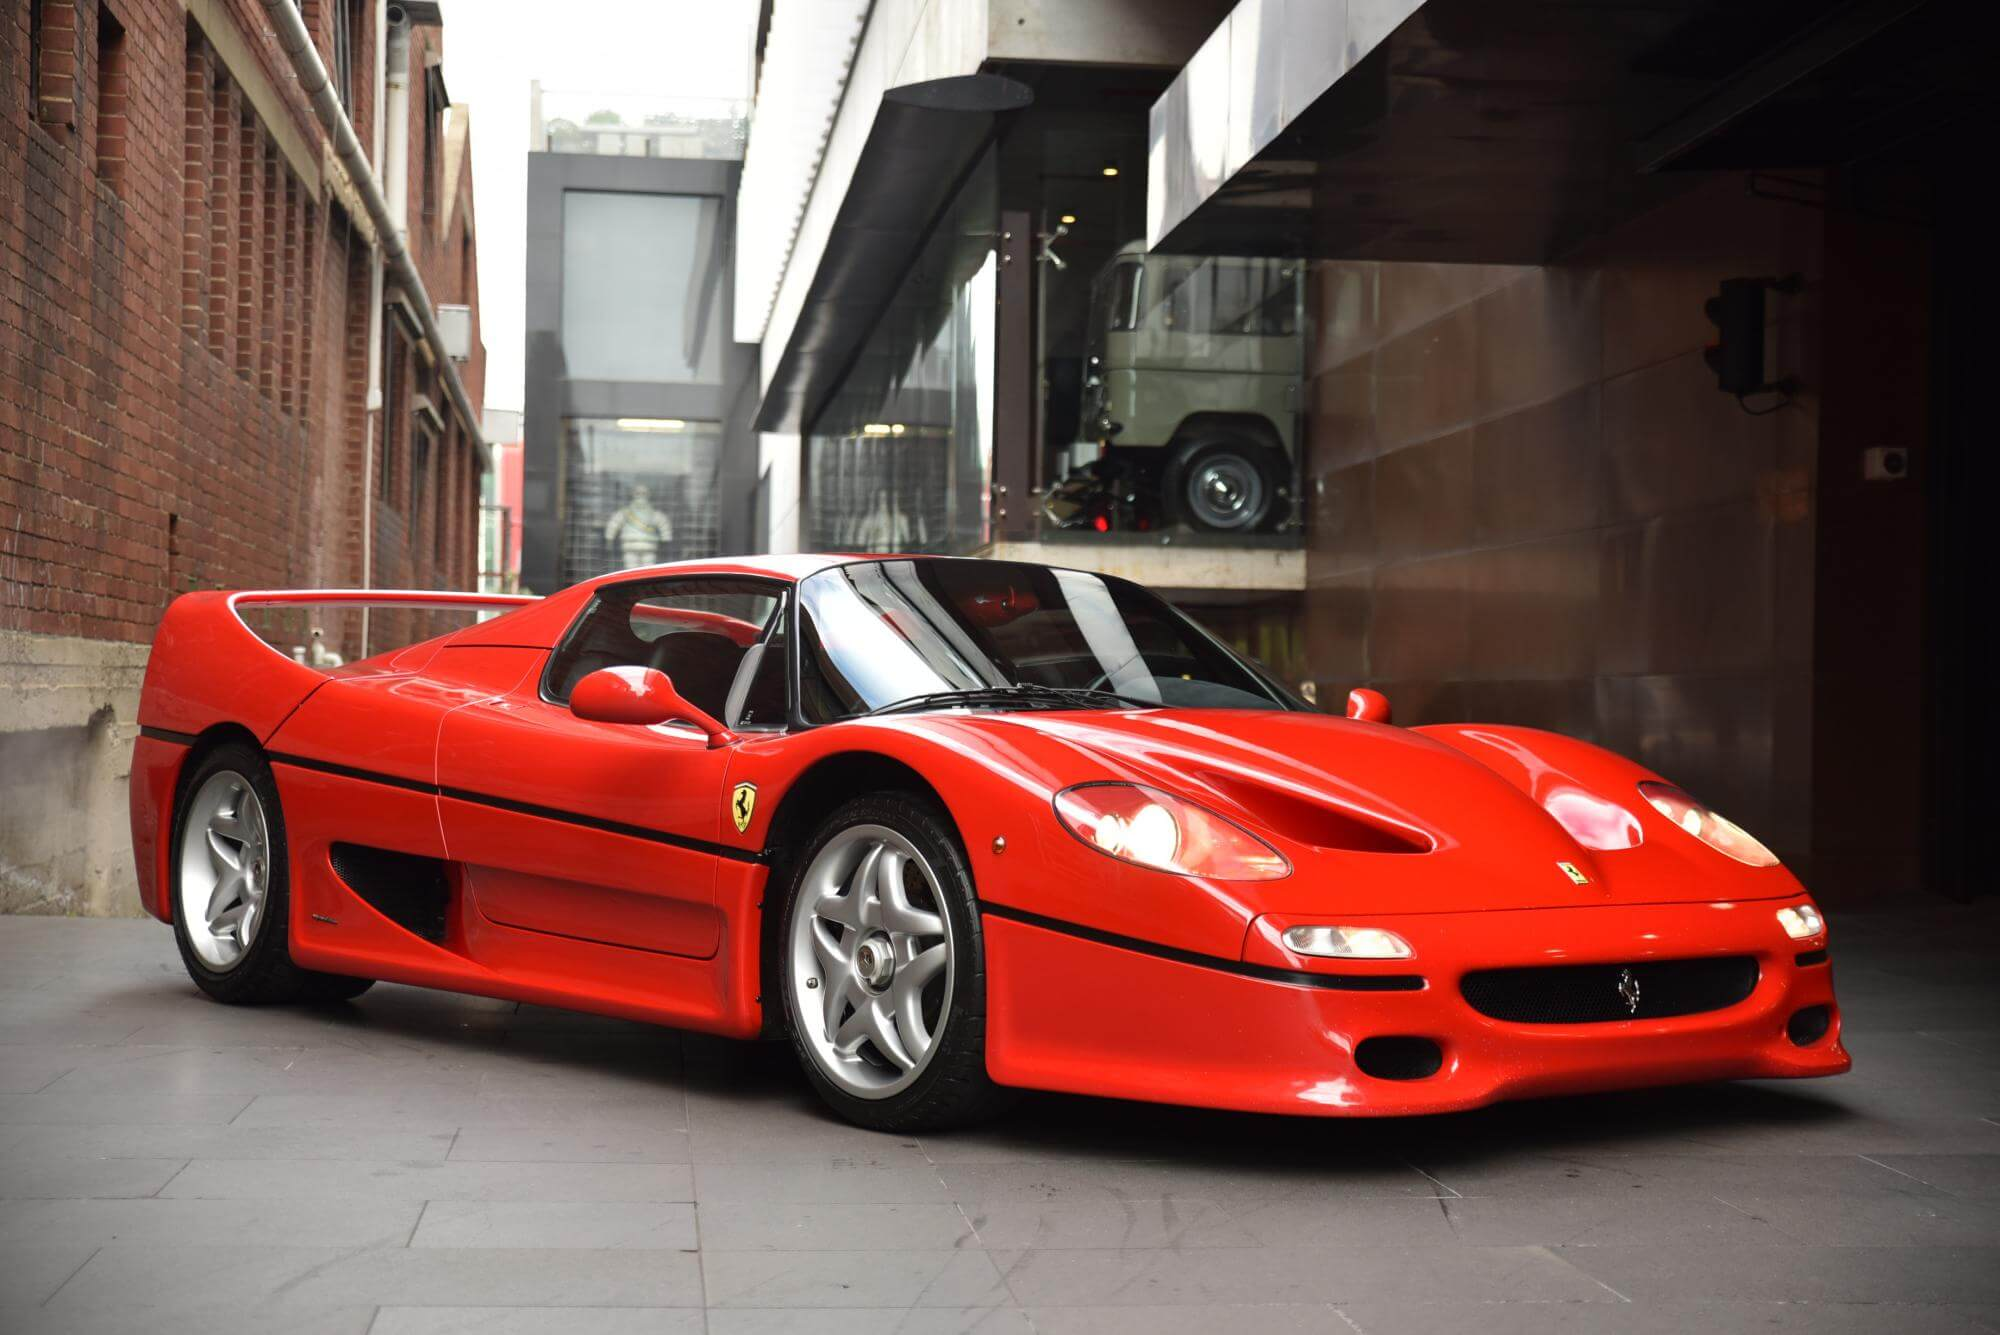 Ferrari F50 For Sale >> The Ferrari F50 Is a Prancing Horse Surrounded by ...